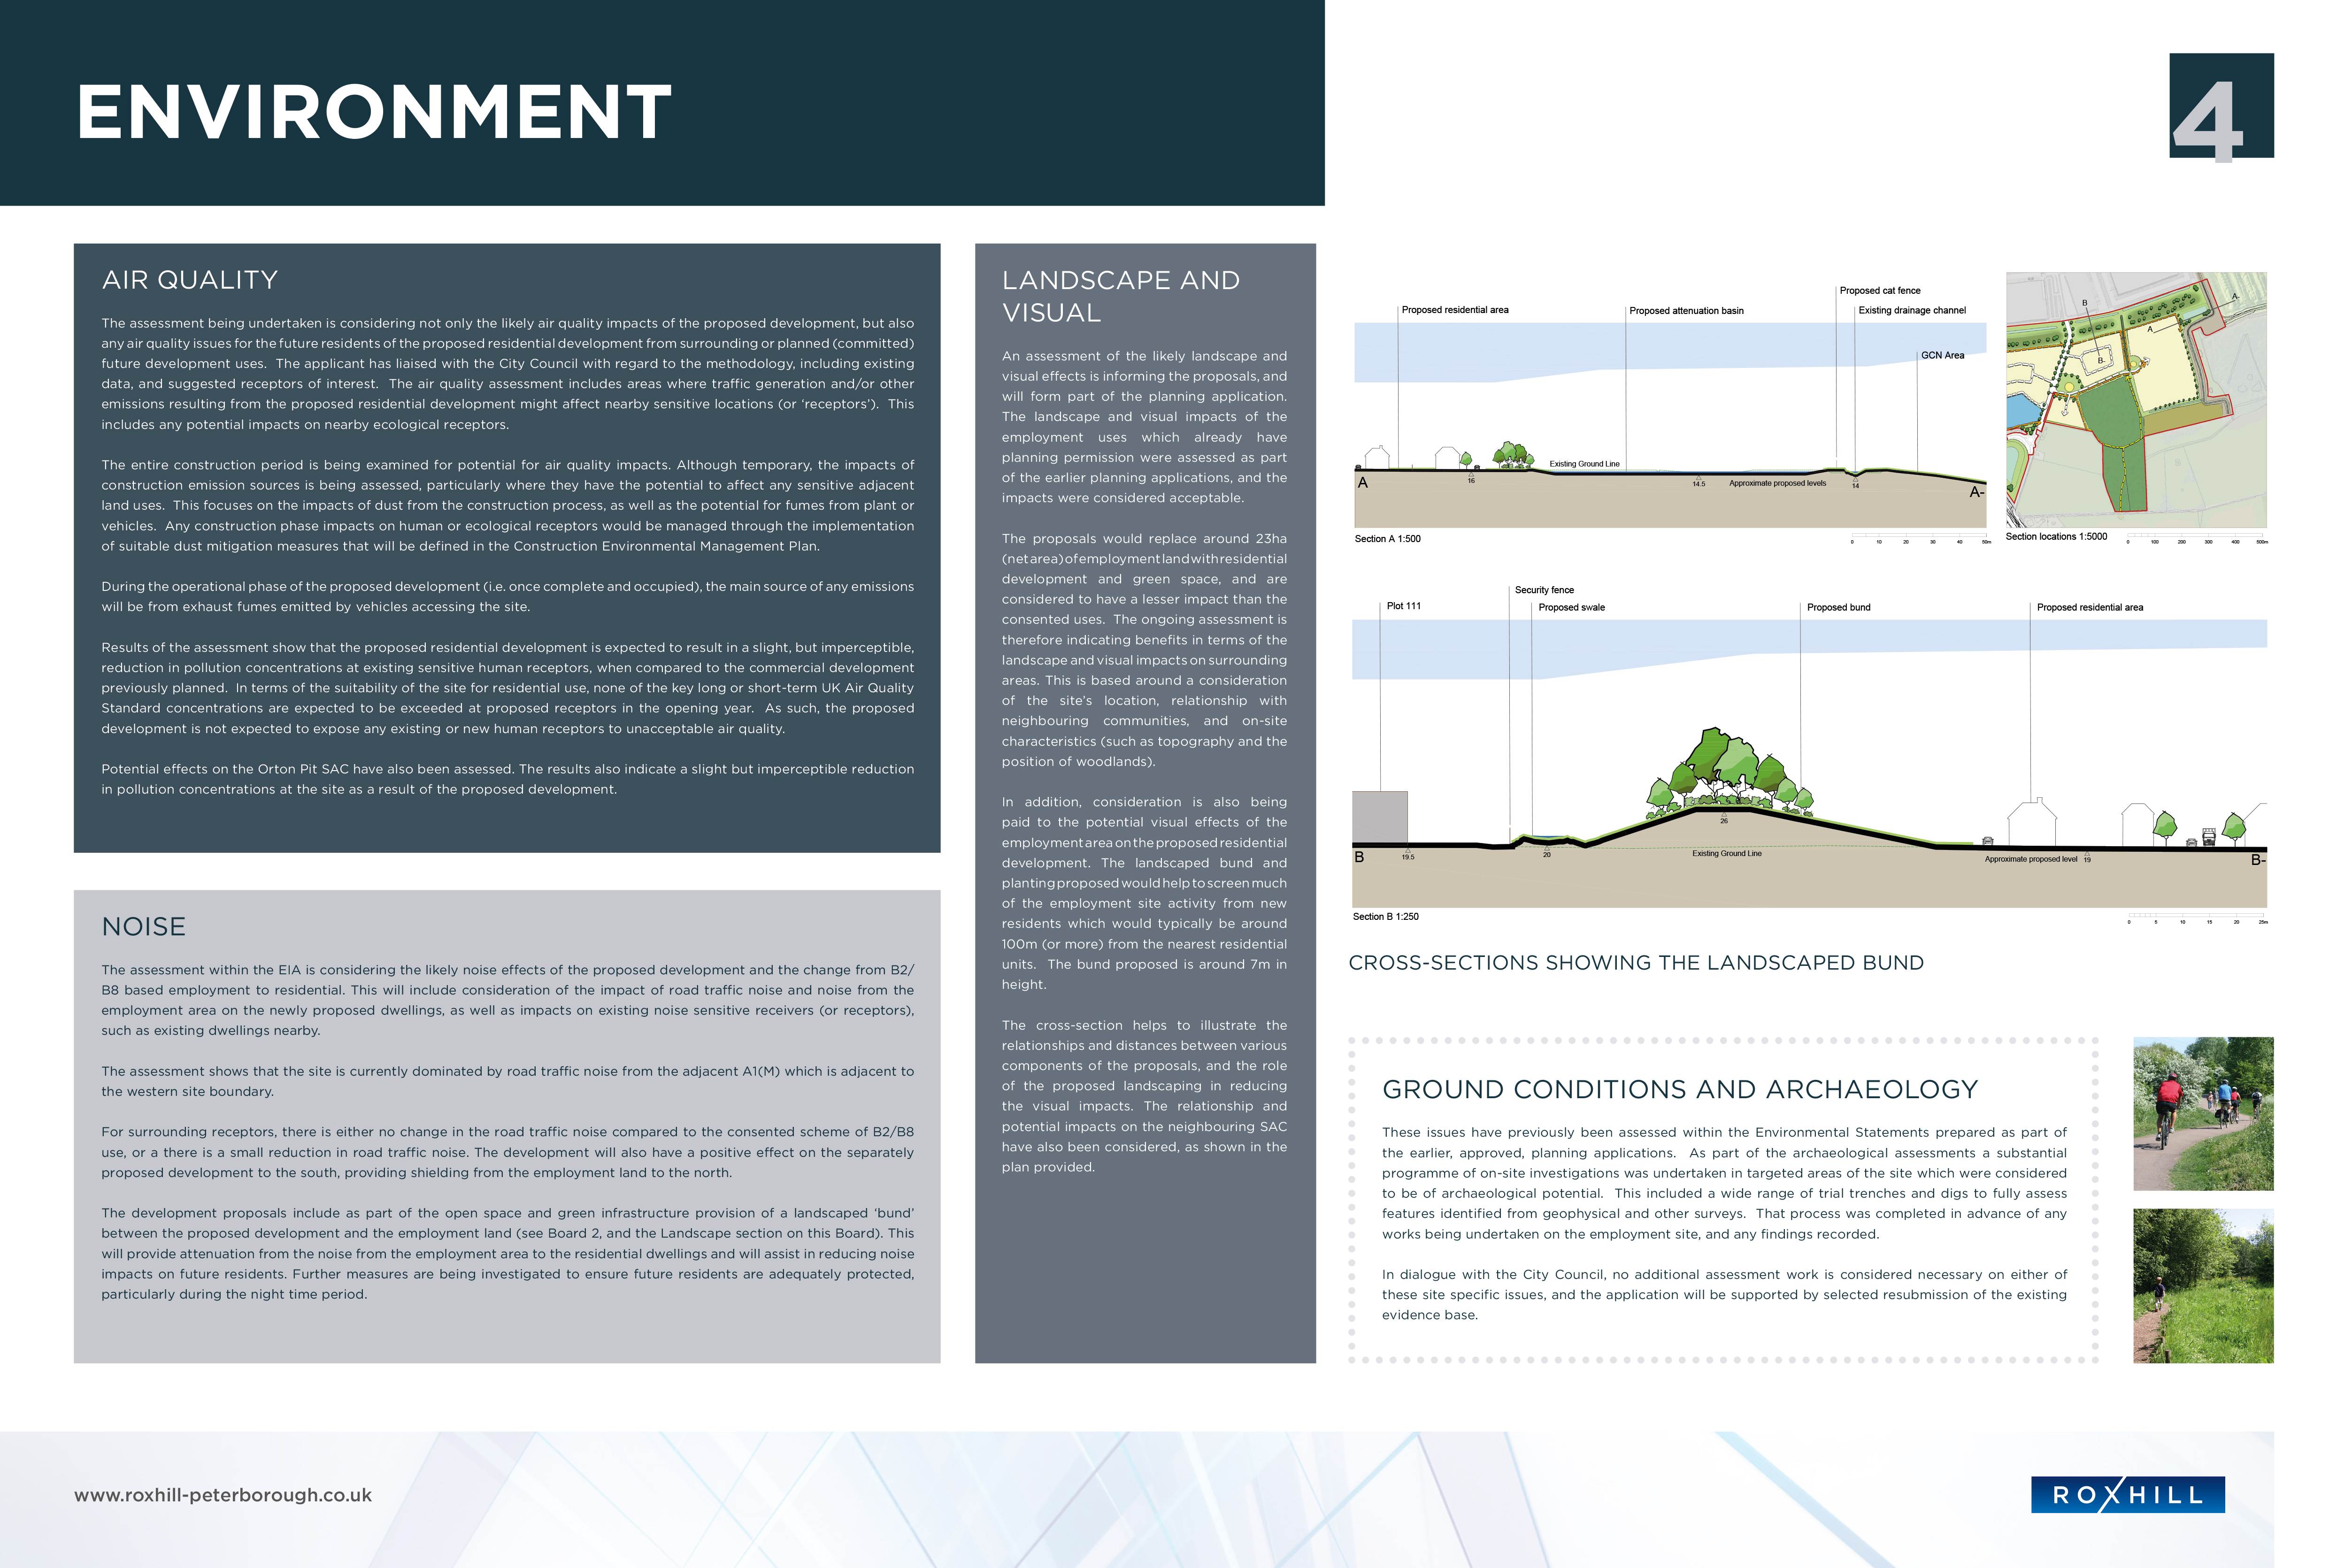 environmental noise management plan Kwinana international motorplex, review of the noise management plan and potential change to environmental conditions relating to noise management under section 46 of the environmental protection act.